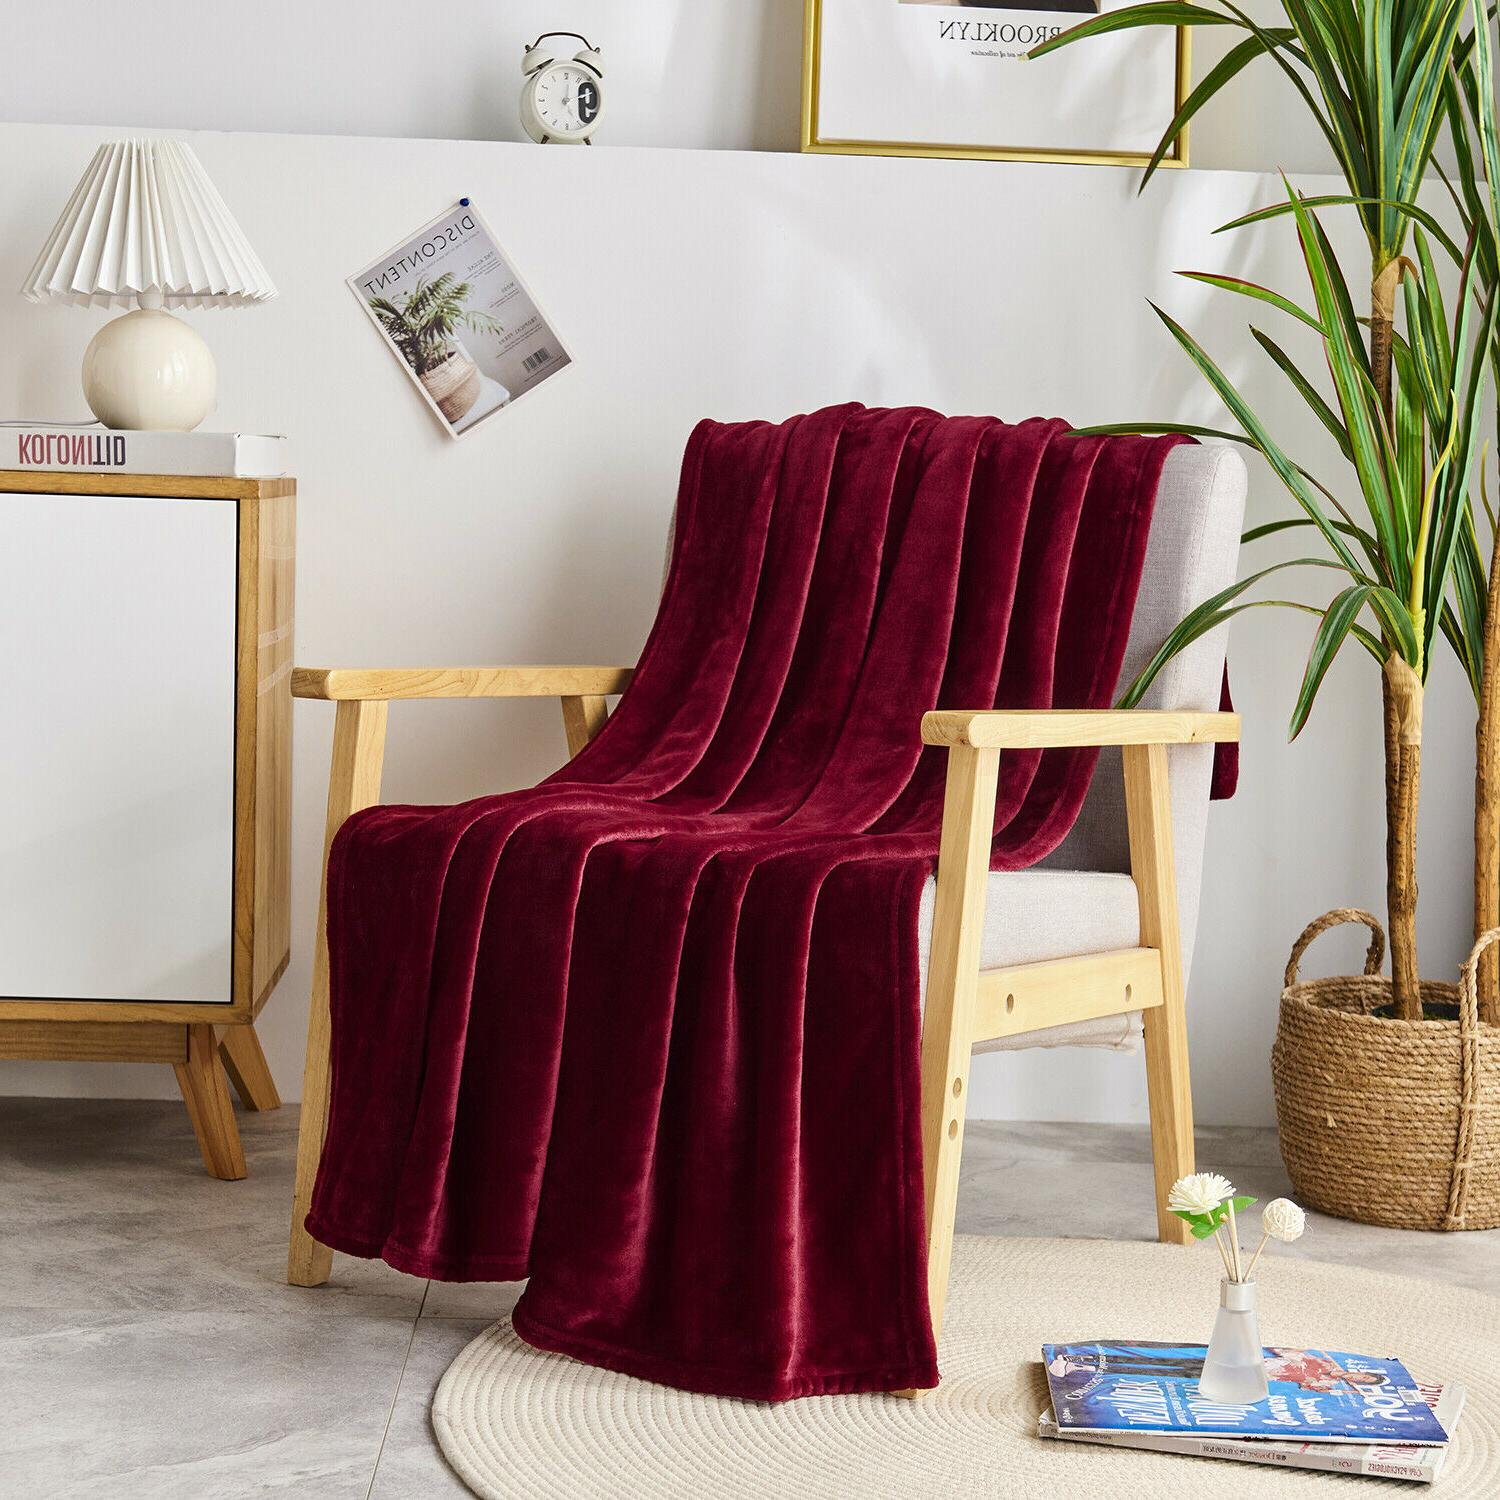 "Luxurious Fleece Blanket 50"" x - Burgundy"